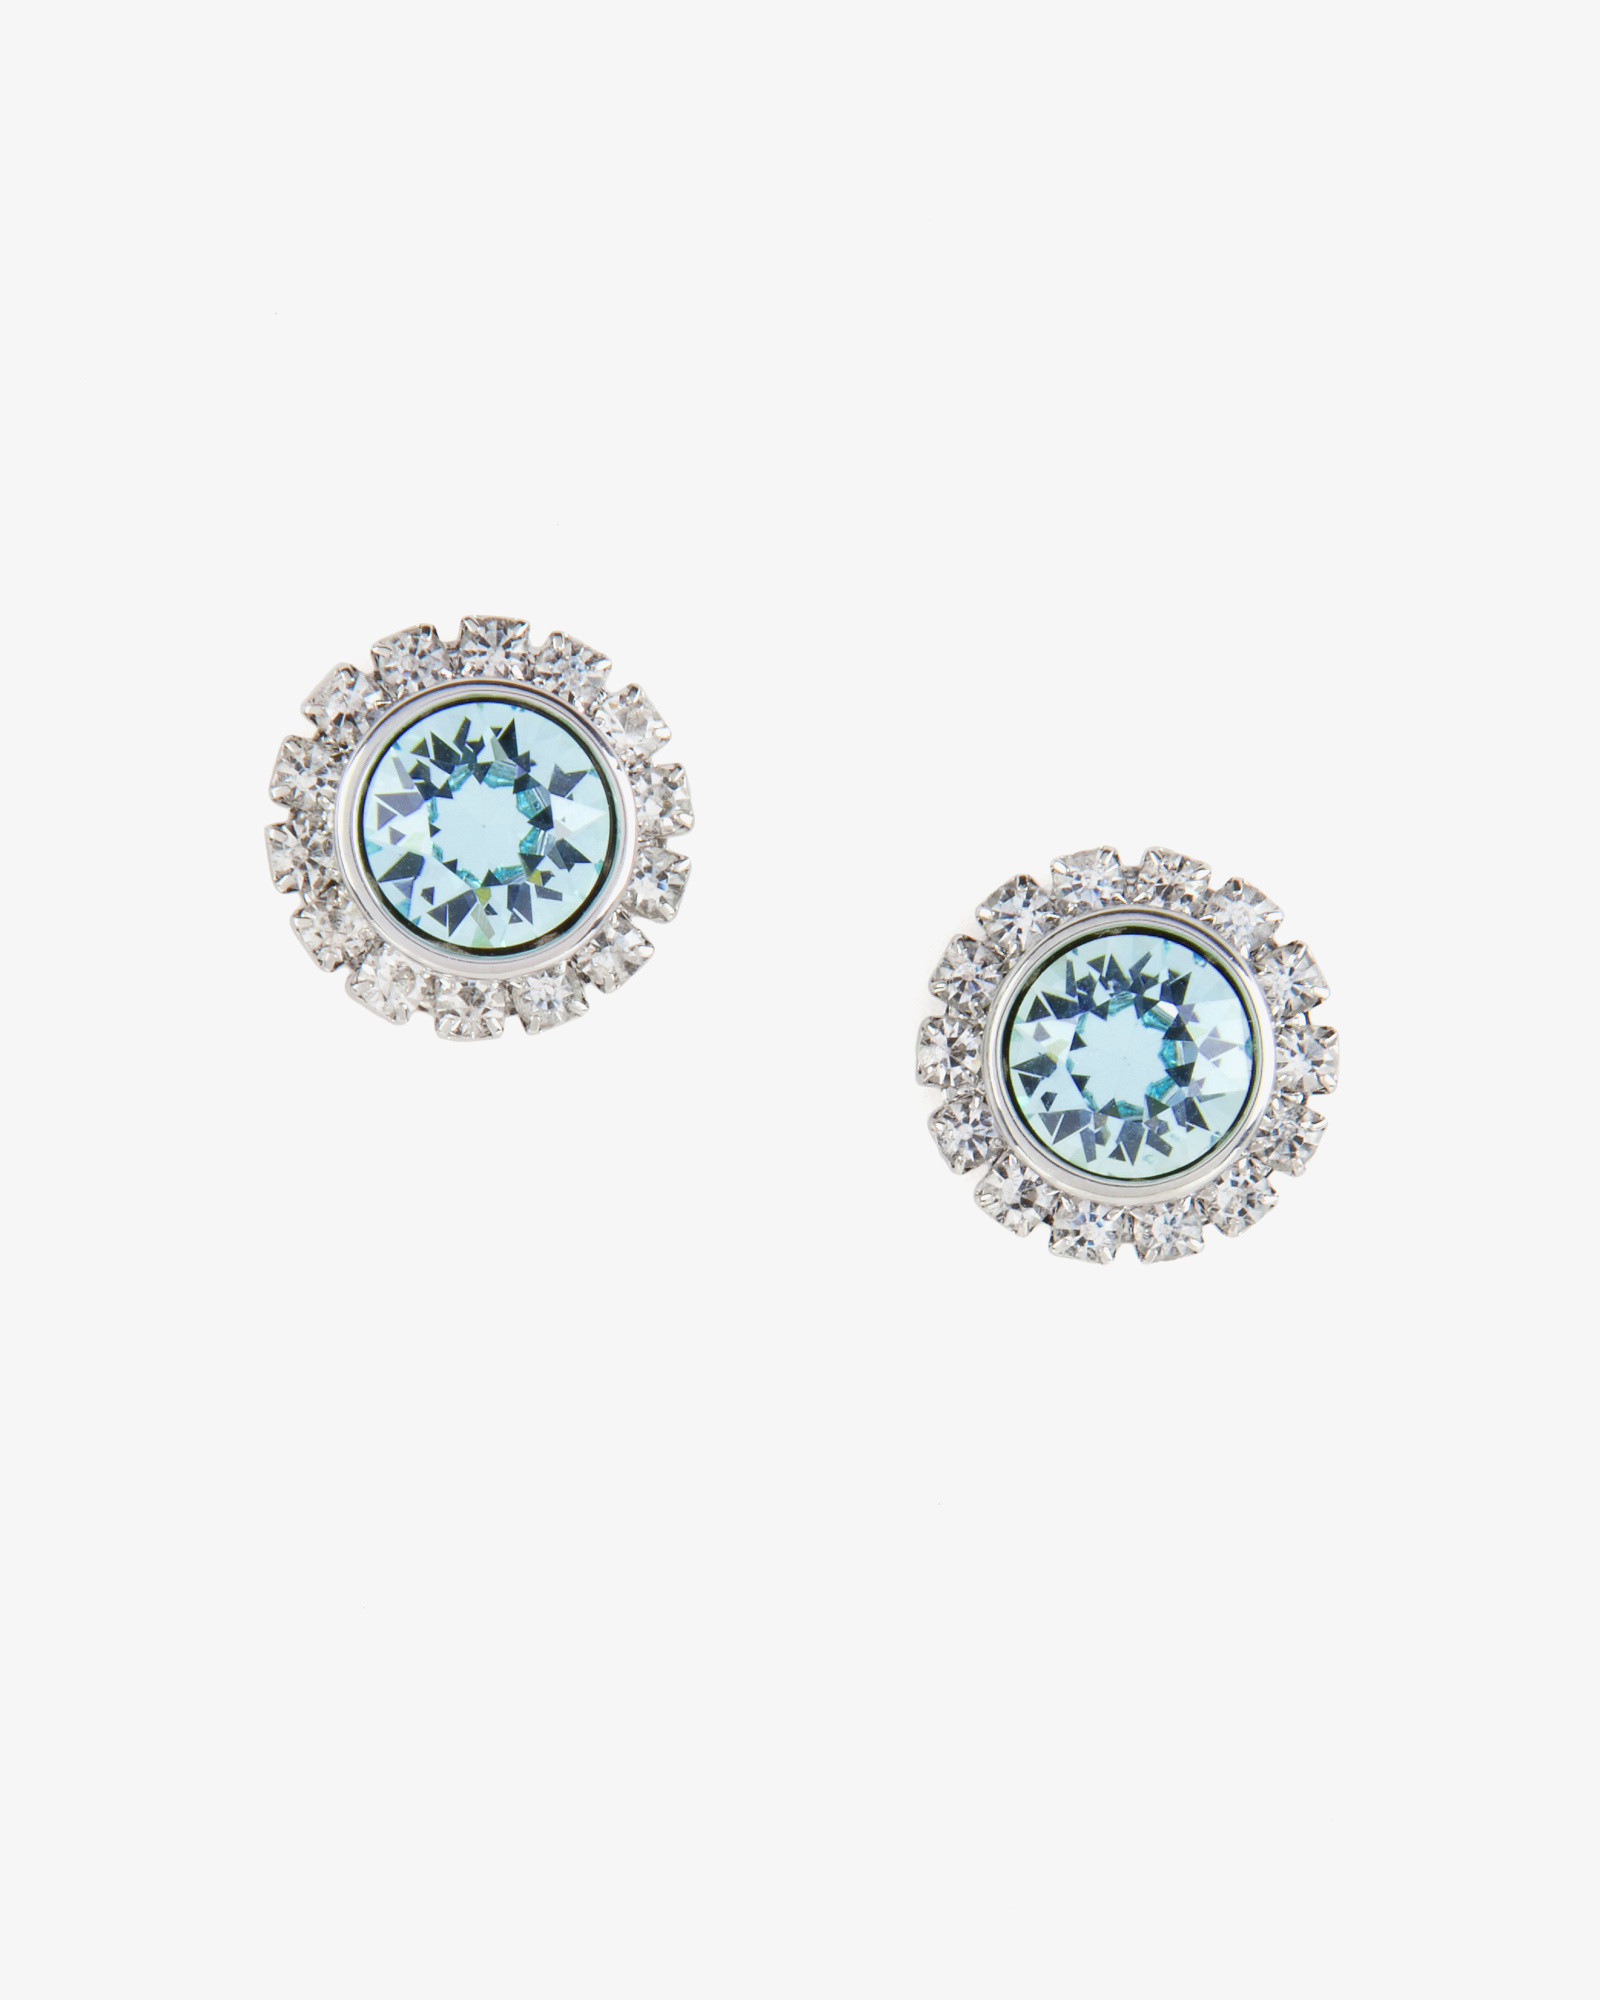 a359c9ab7 Ted Baker Crystal Stud Earrings in Blue - Lyst